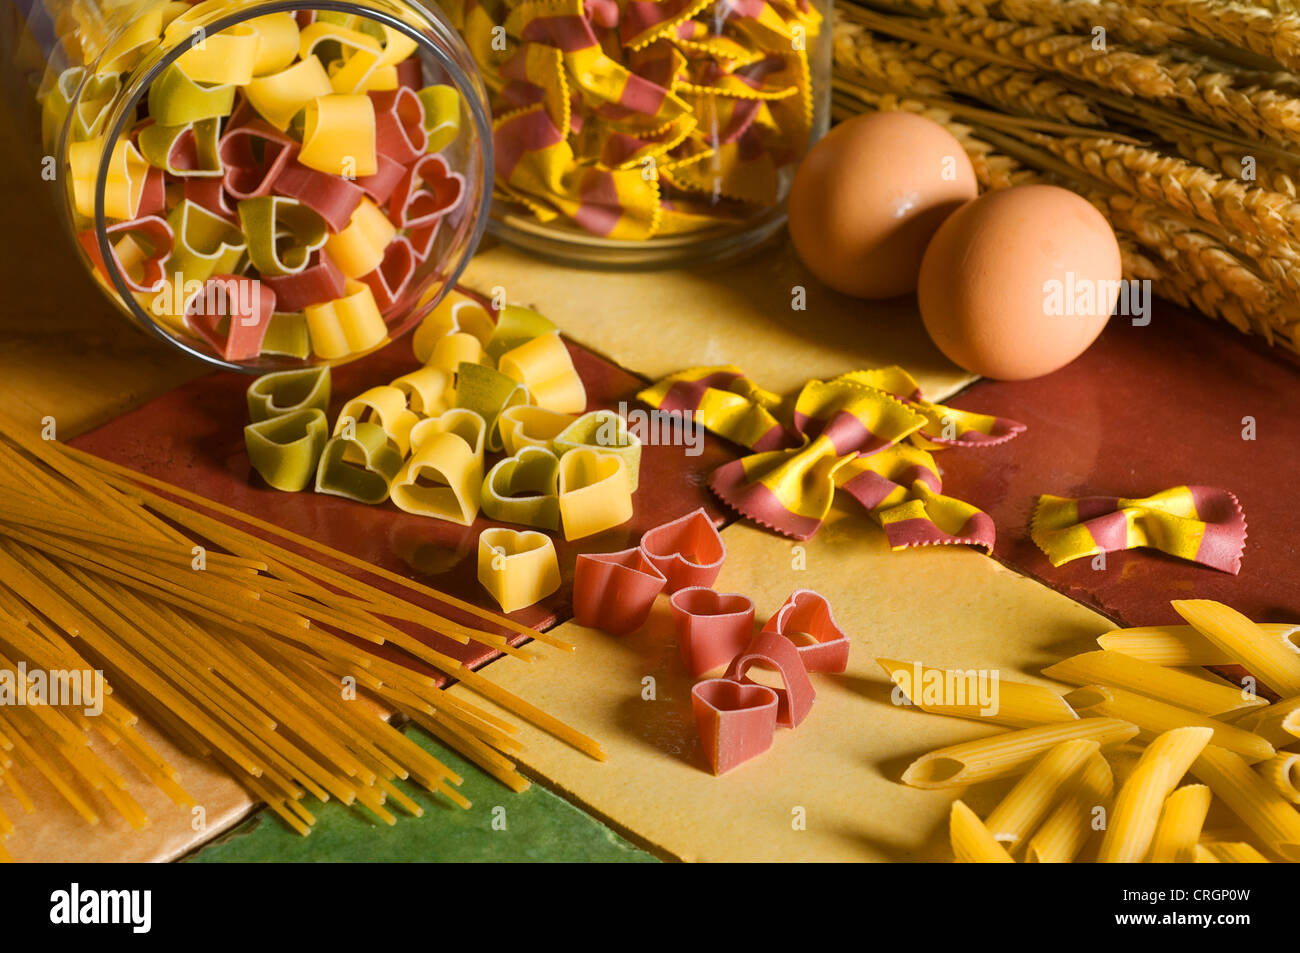 pasta from Italia - Stock Image